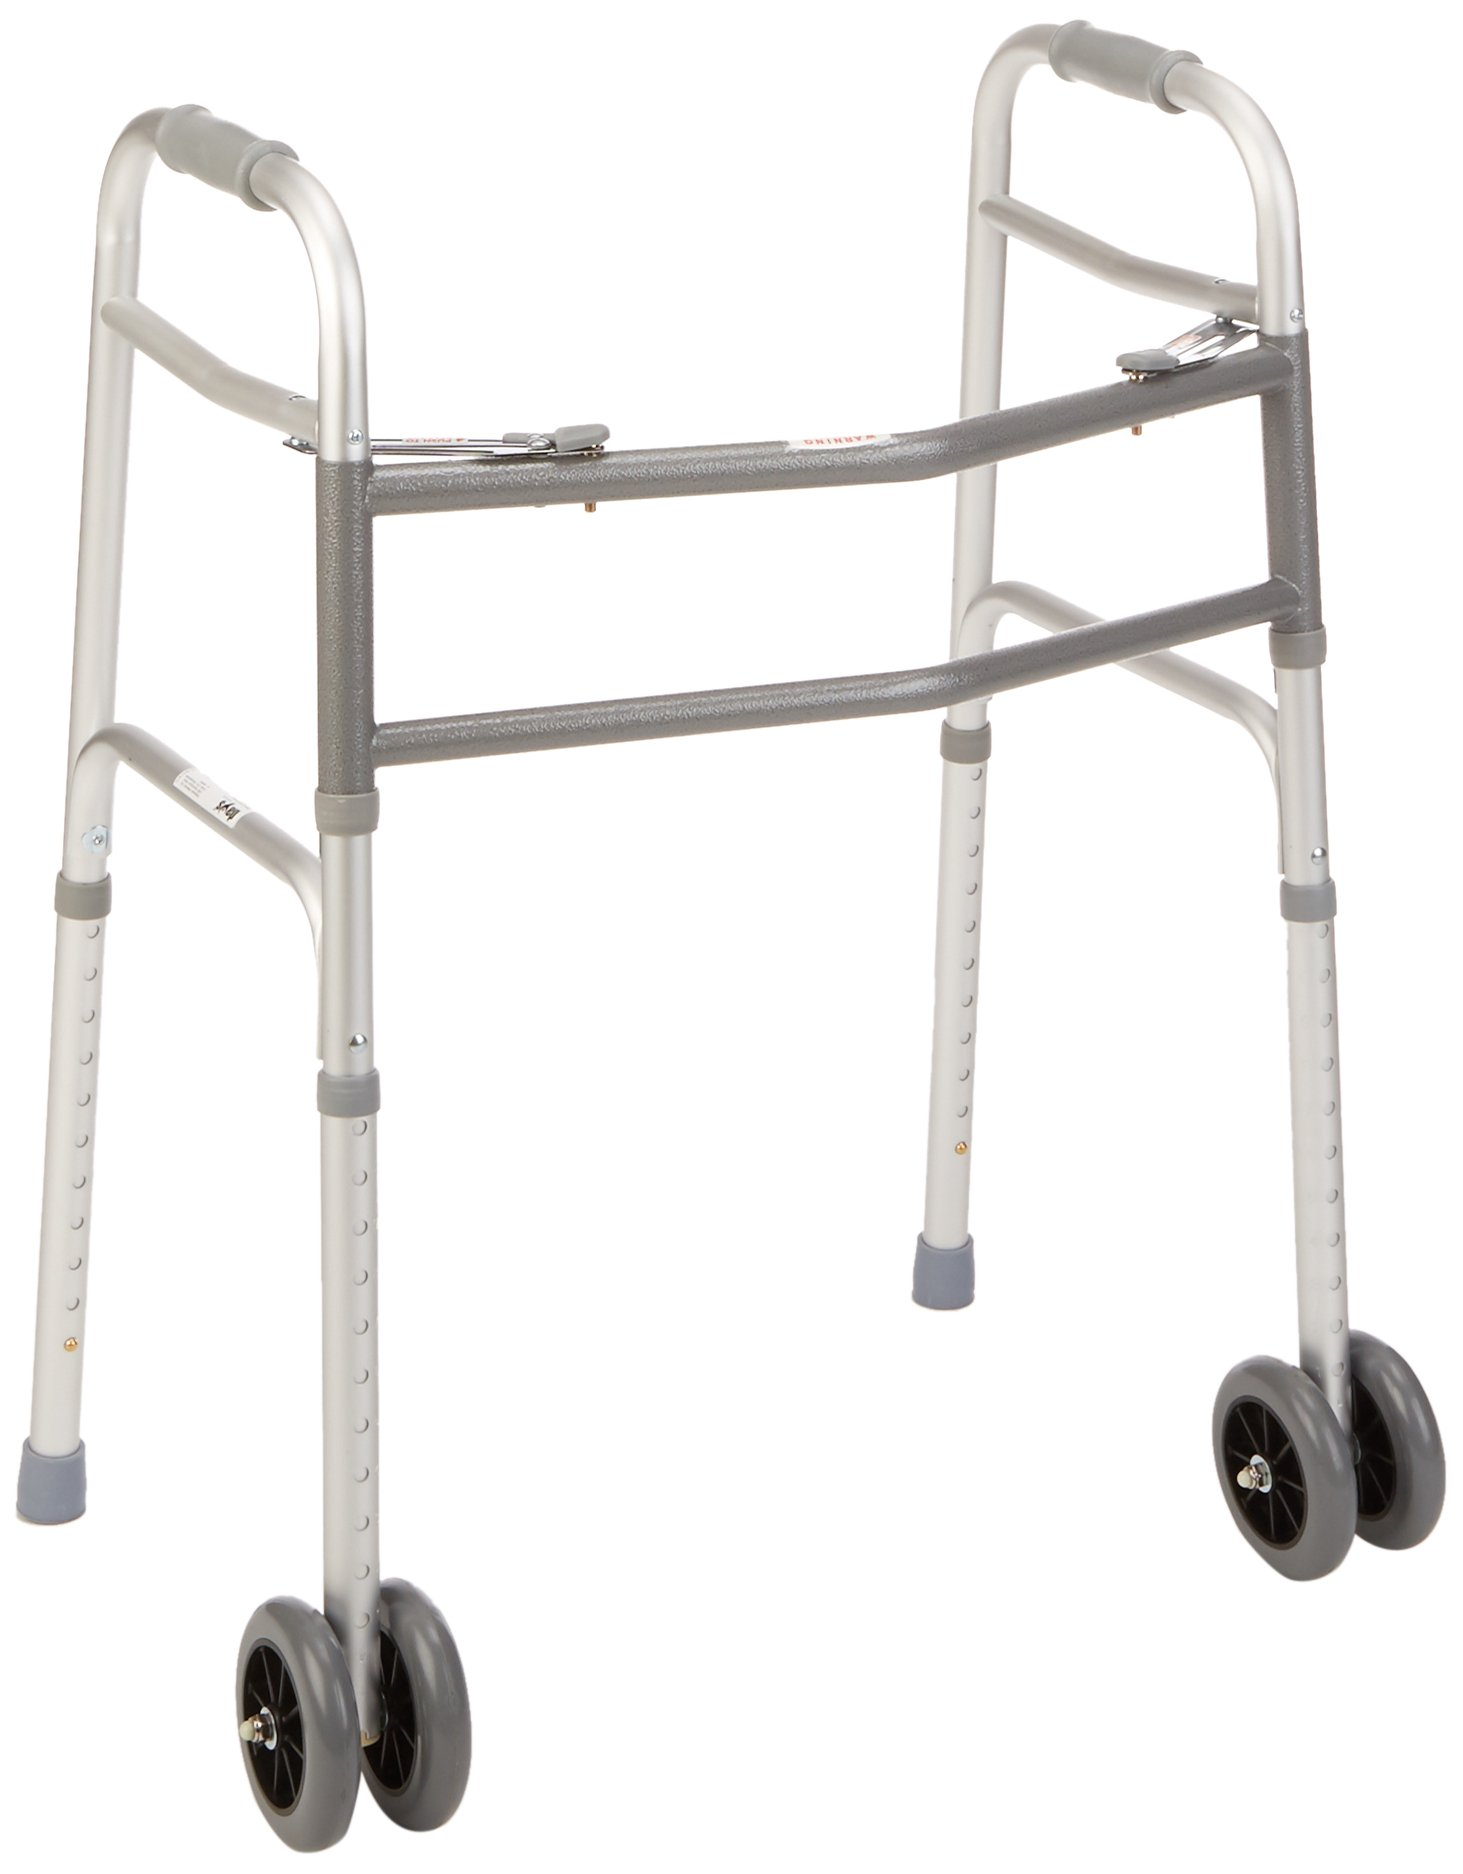 Days Bariatric Adjustable Walker with Double 5'' Wheels for Elderly & Handicapped, Extra Wide Rollator, Heavy Duty Stable Walker with Dual Release Locking, Mobility Assist for Tall & Large Individuals